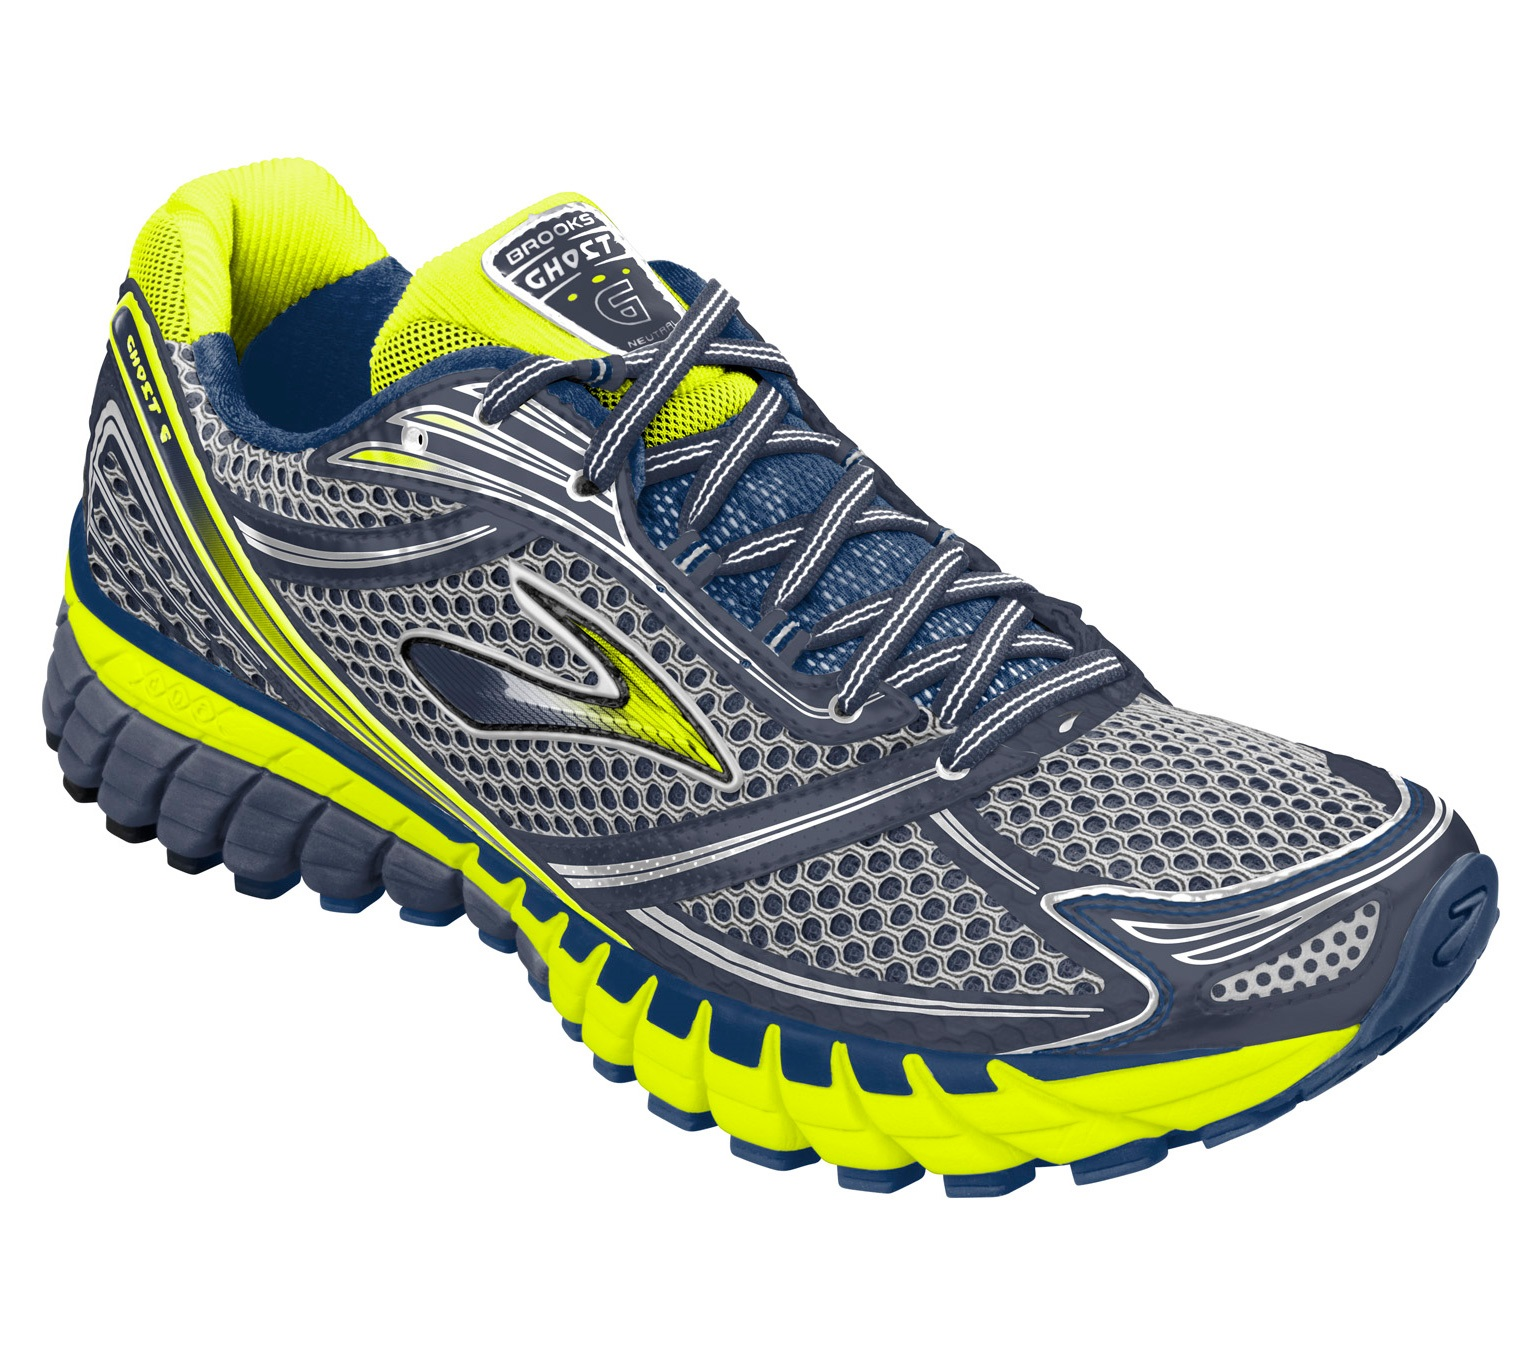 dfd23955ae5e5 The Running Shoe Review    Brooks Ghost 6